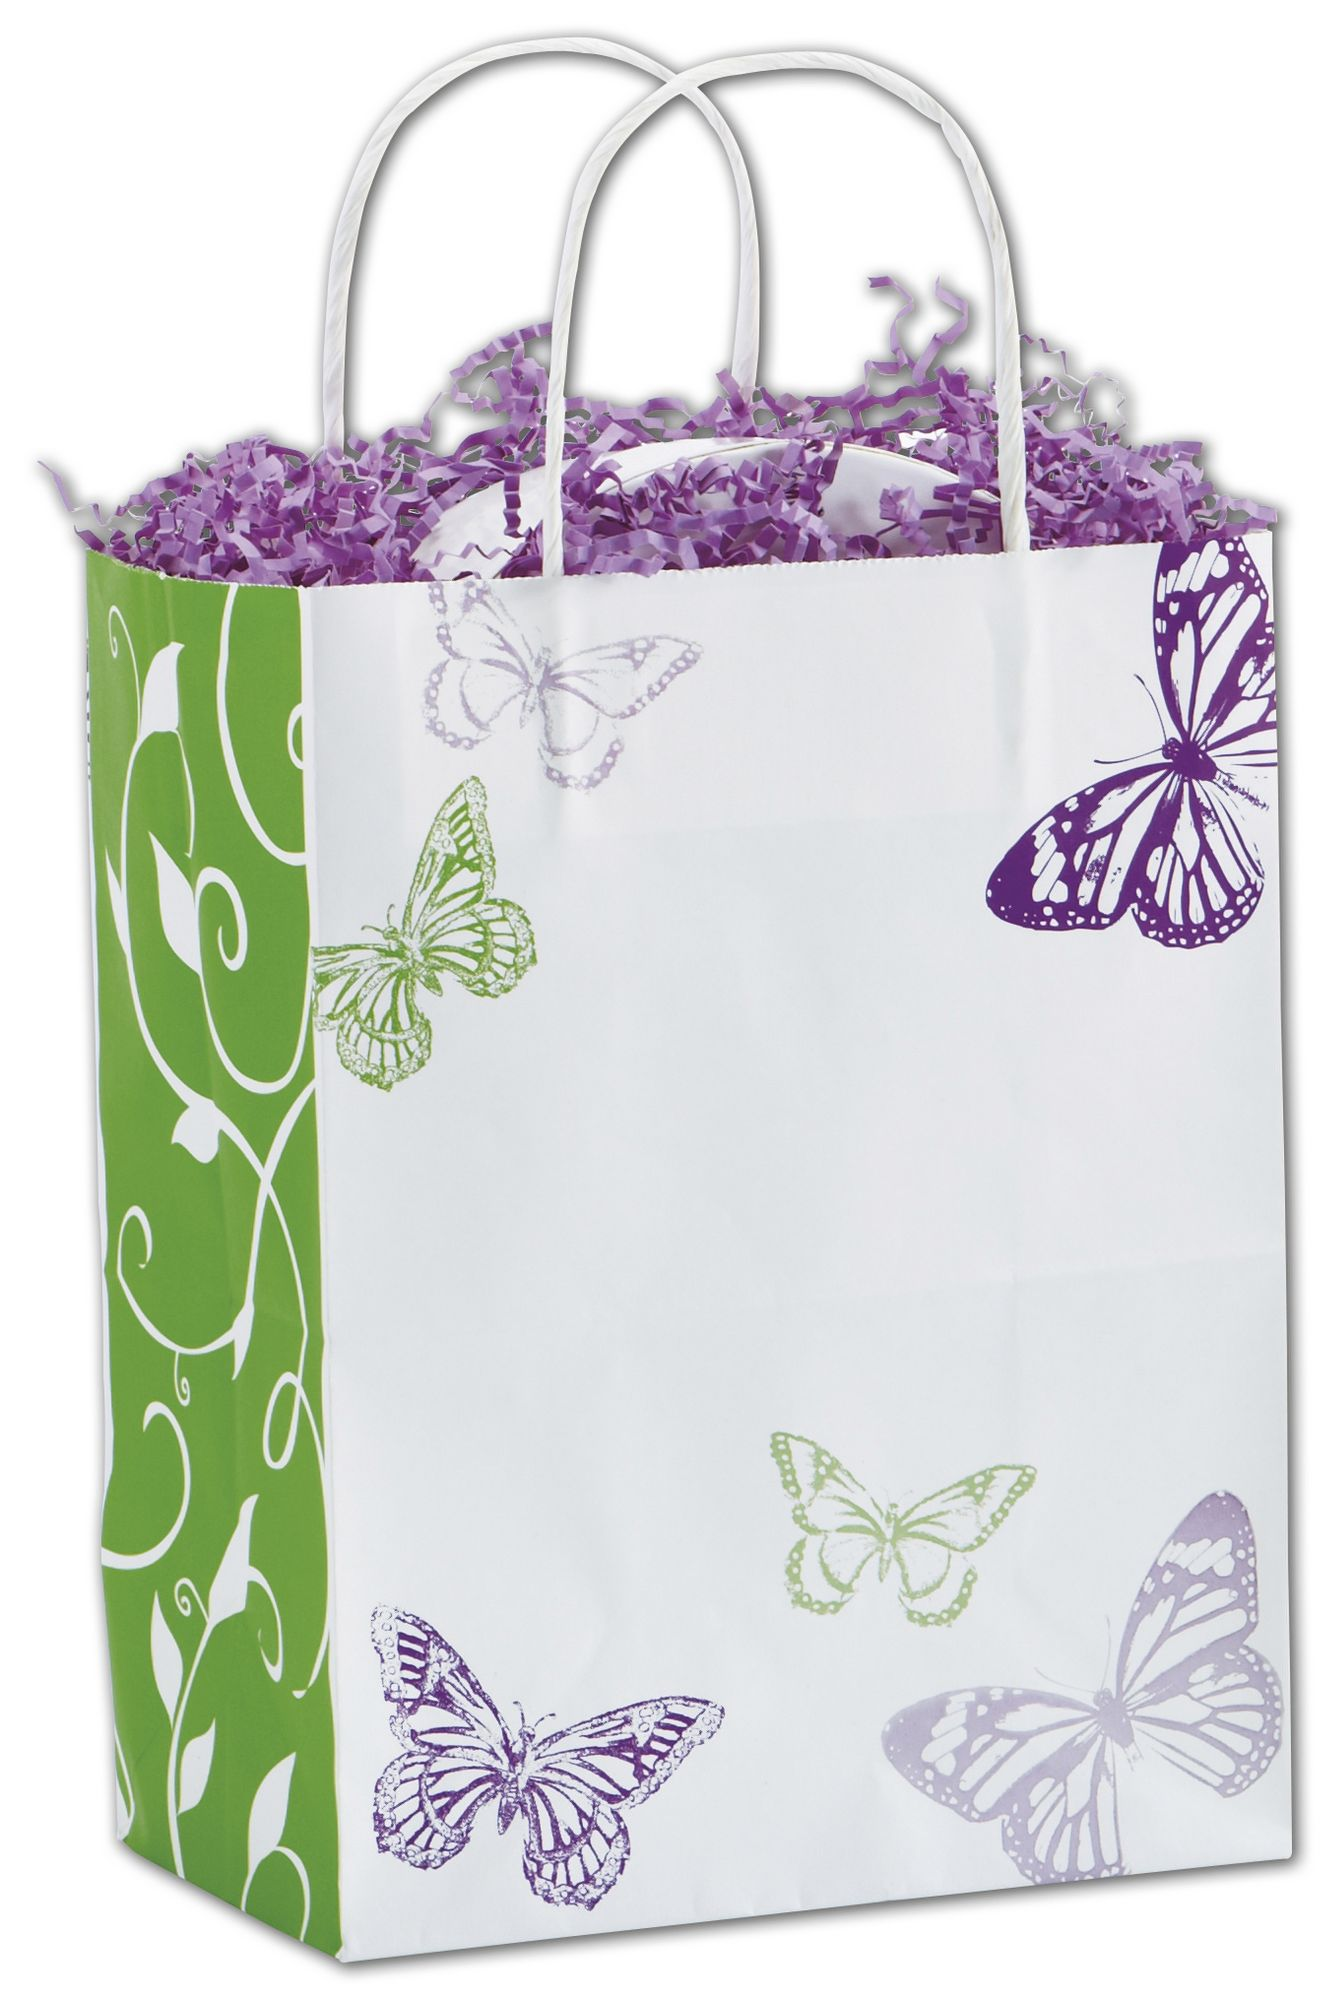 These paper shopping bags make it easy to package purchases elegantly.